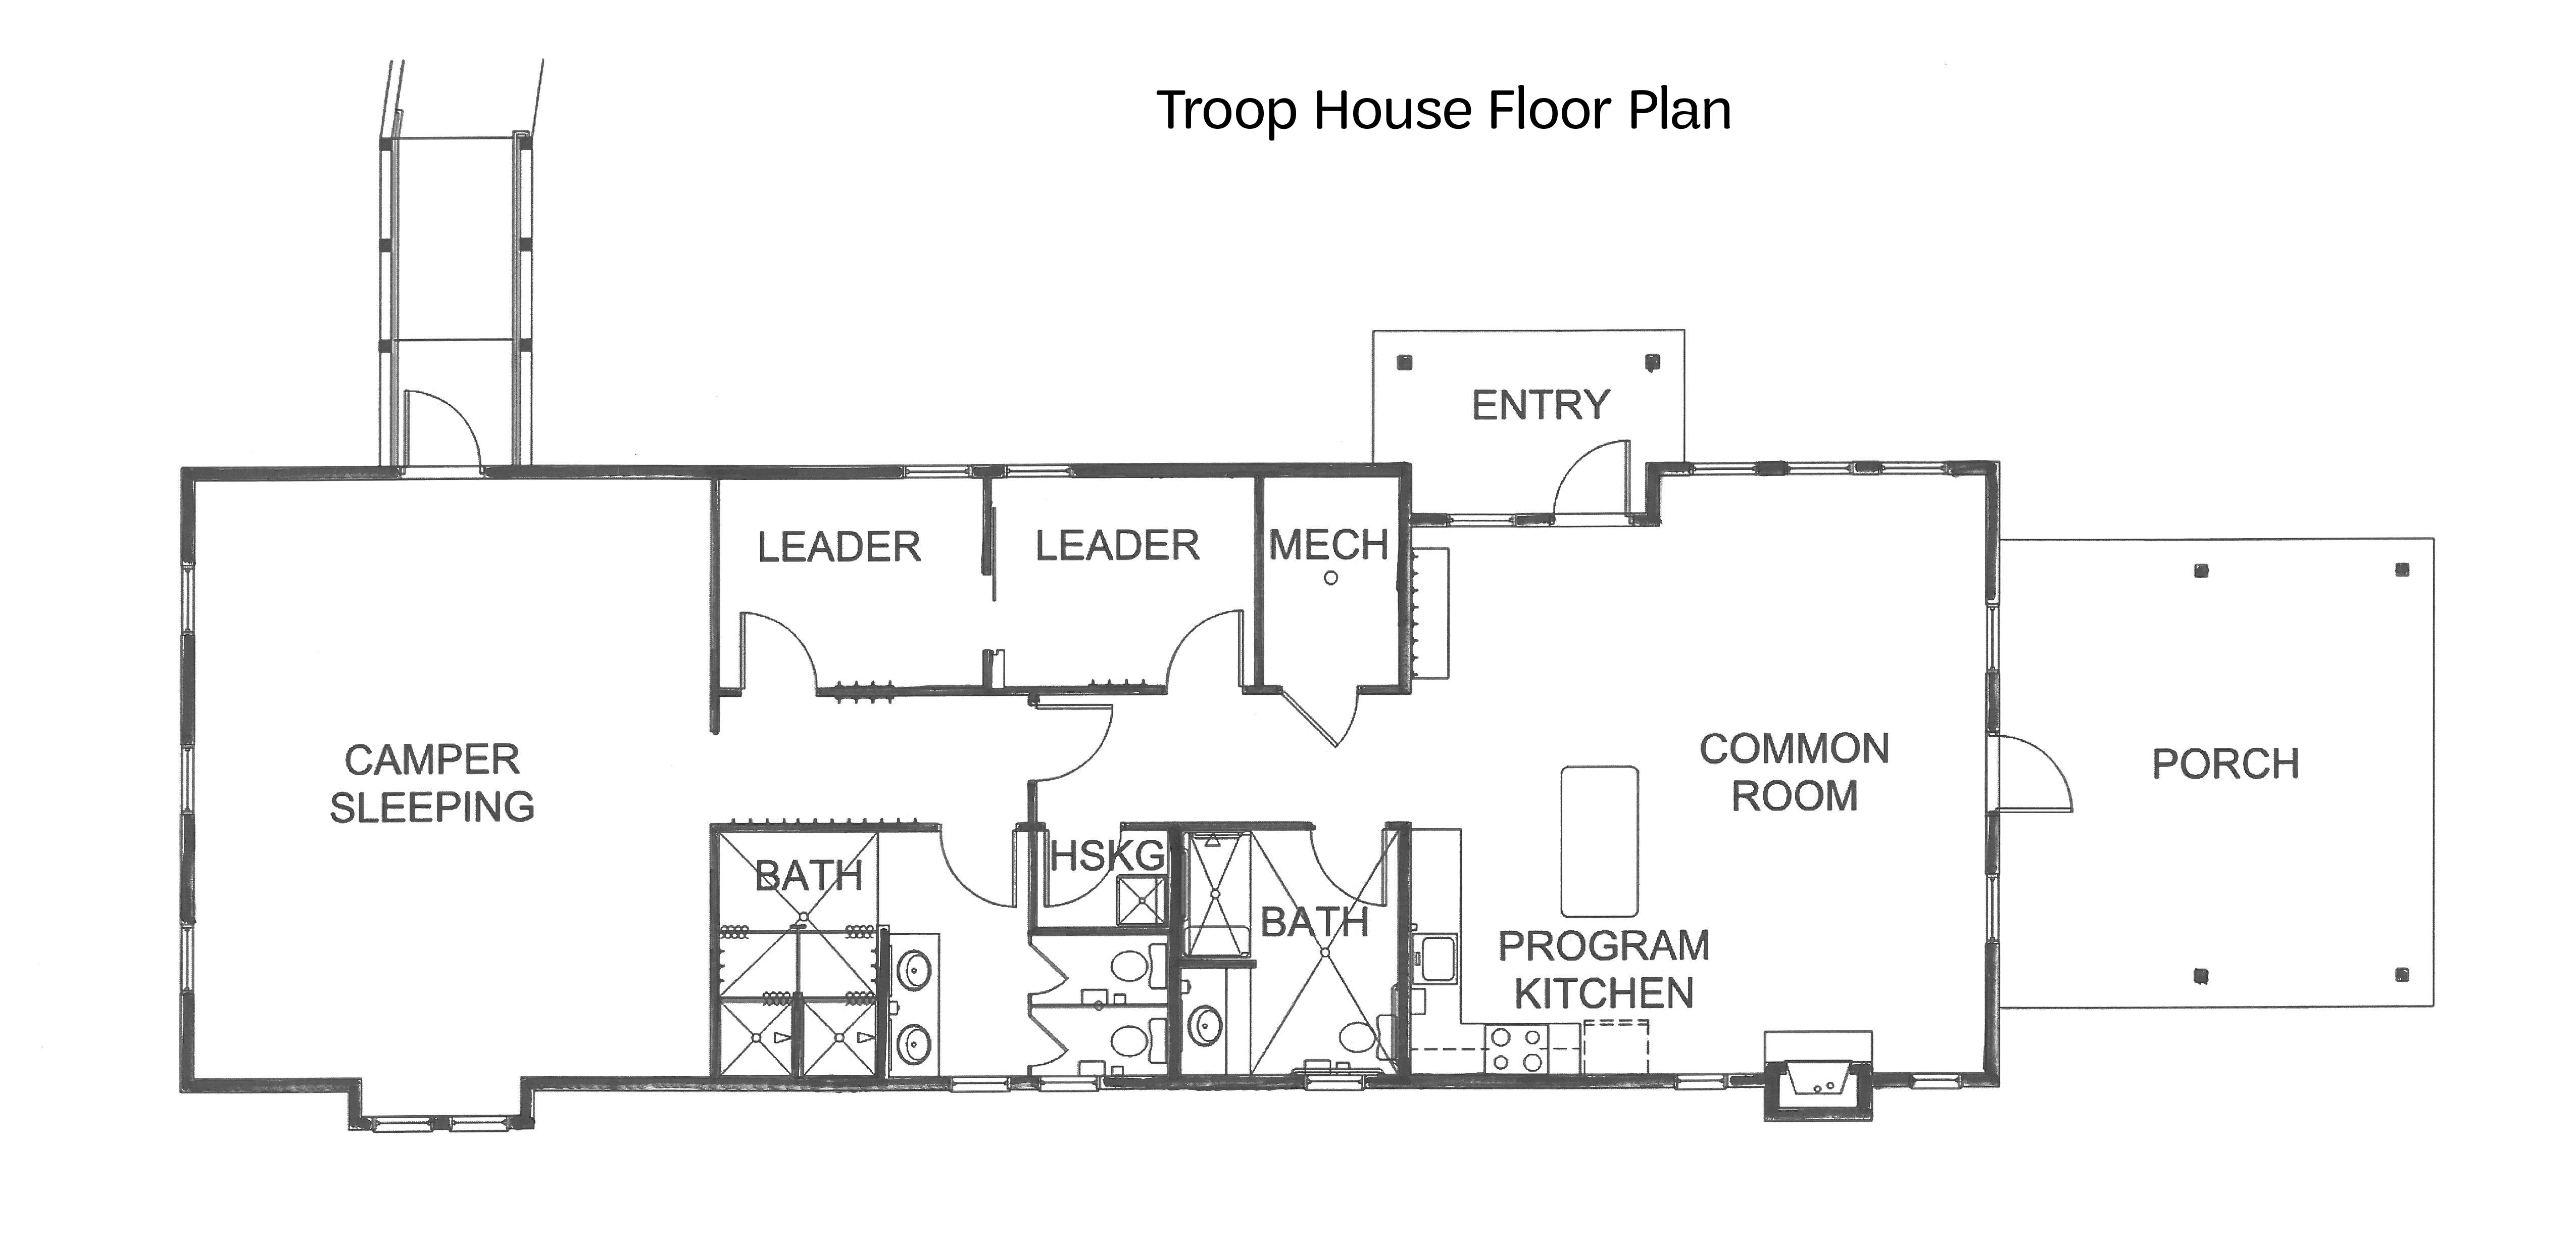 Camp ledgewood girl scouts of north east ohio for House plan program